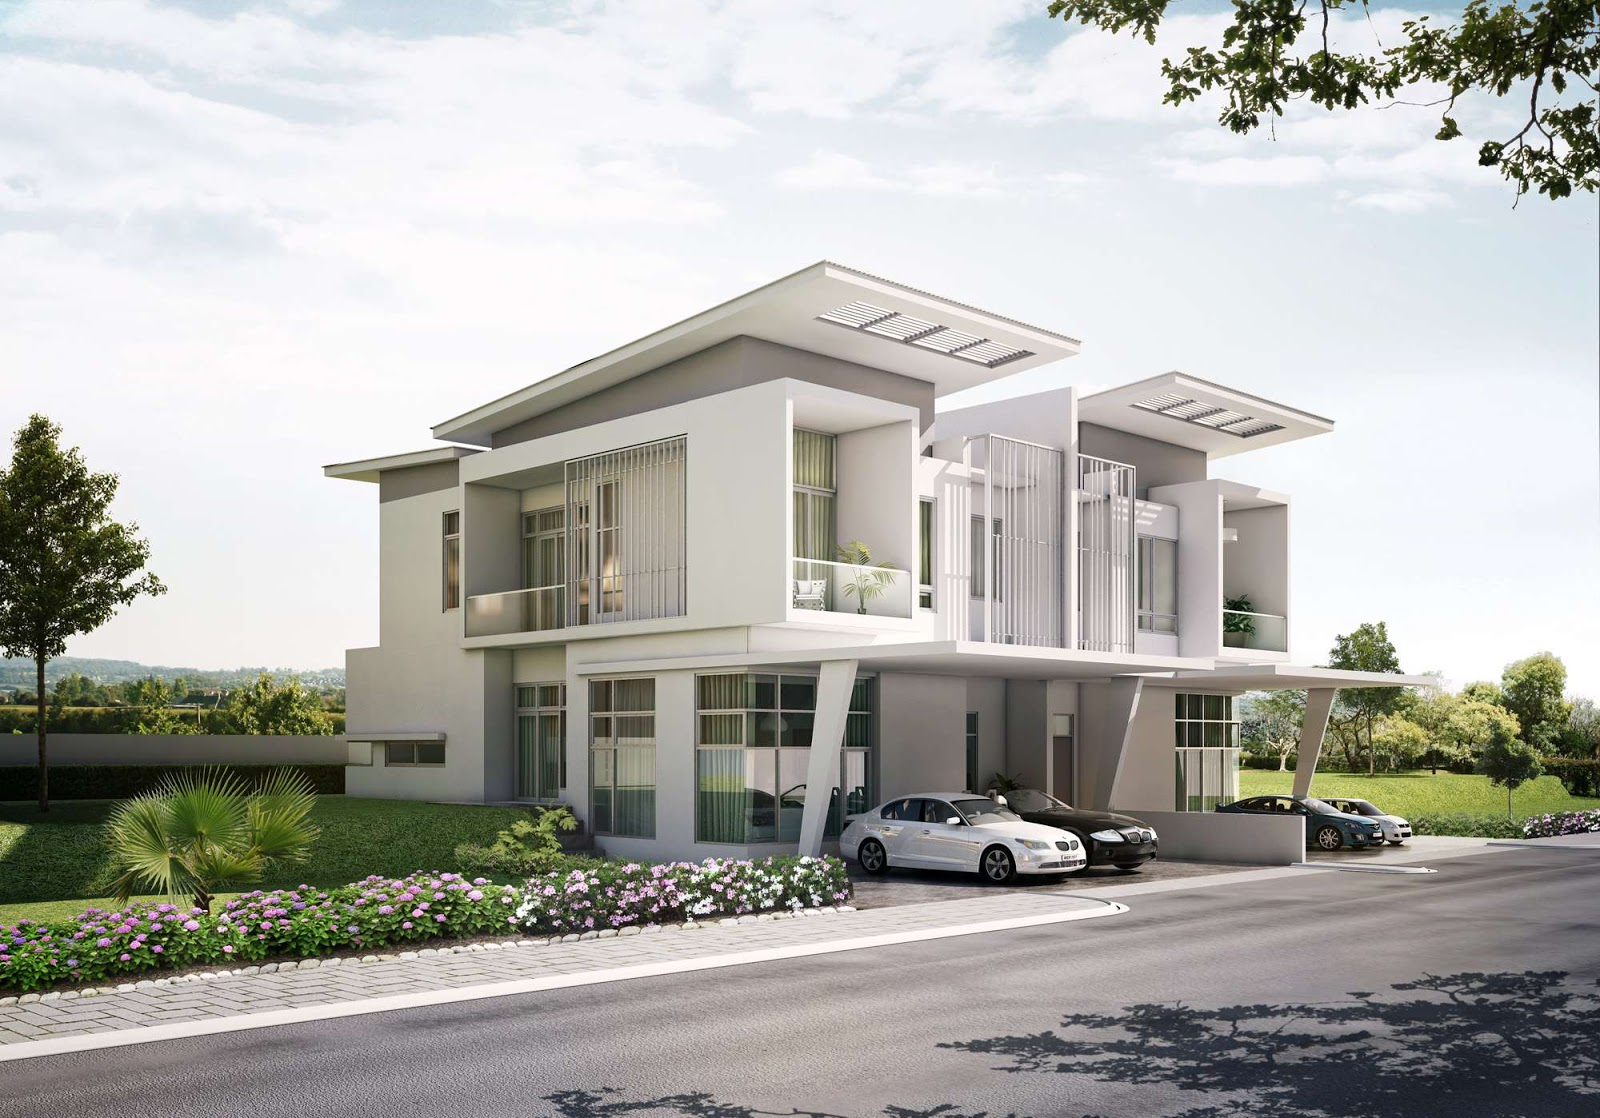 New home designs latest Singapore modern homes